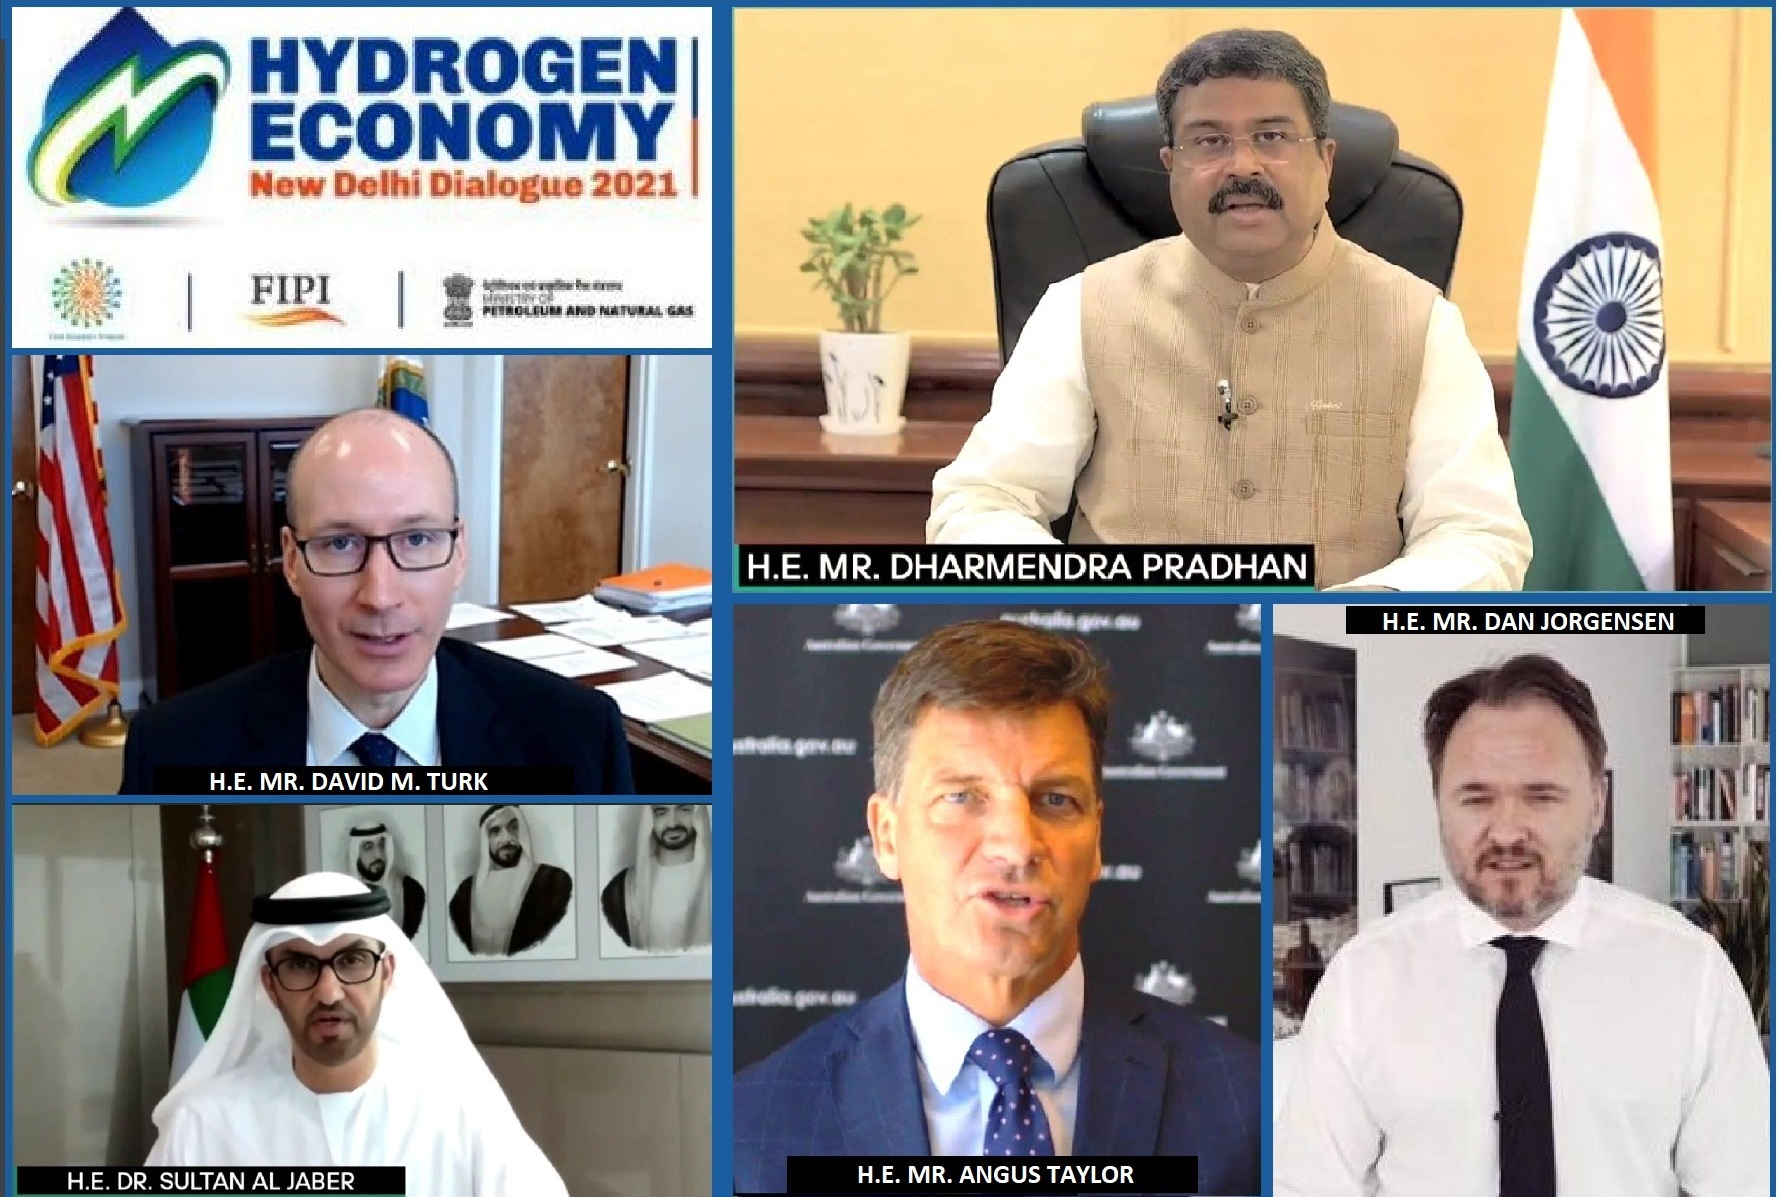 Hydrogen Economy—New Delhi Dialogue 2021